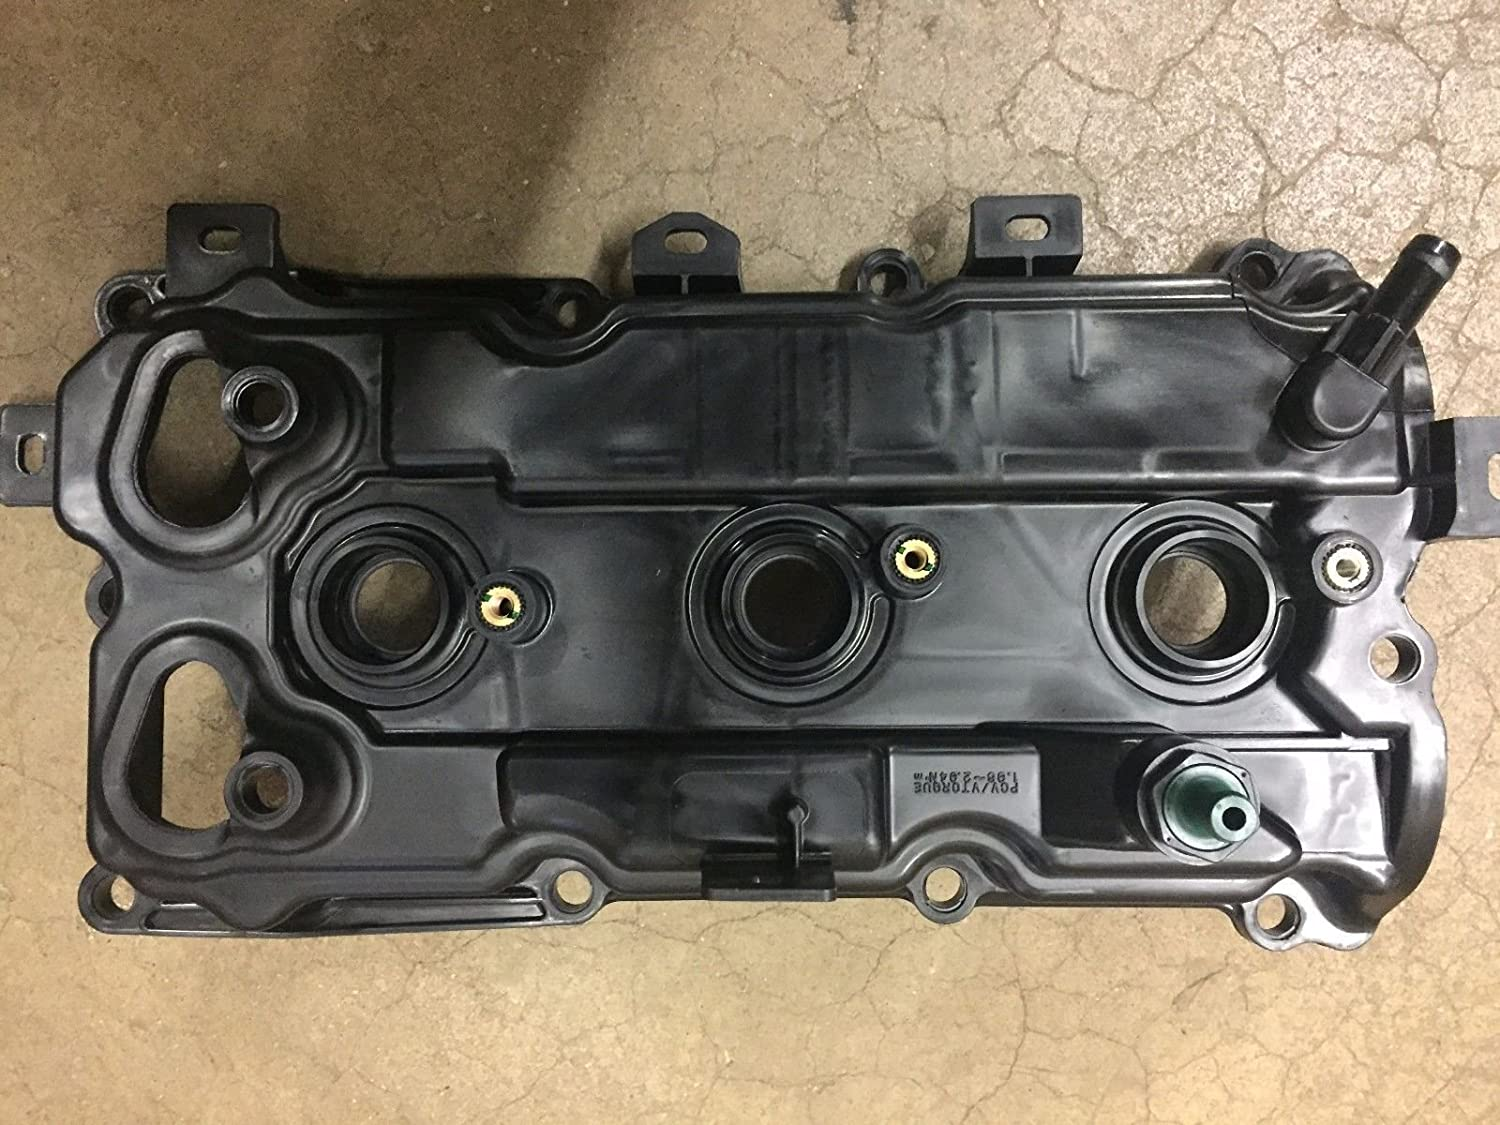 NEW OEM NISSAN RIGHT SIDE VALVE COVER FOR 3.5 ENGINES ALTIMA PATHFINDER QX60